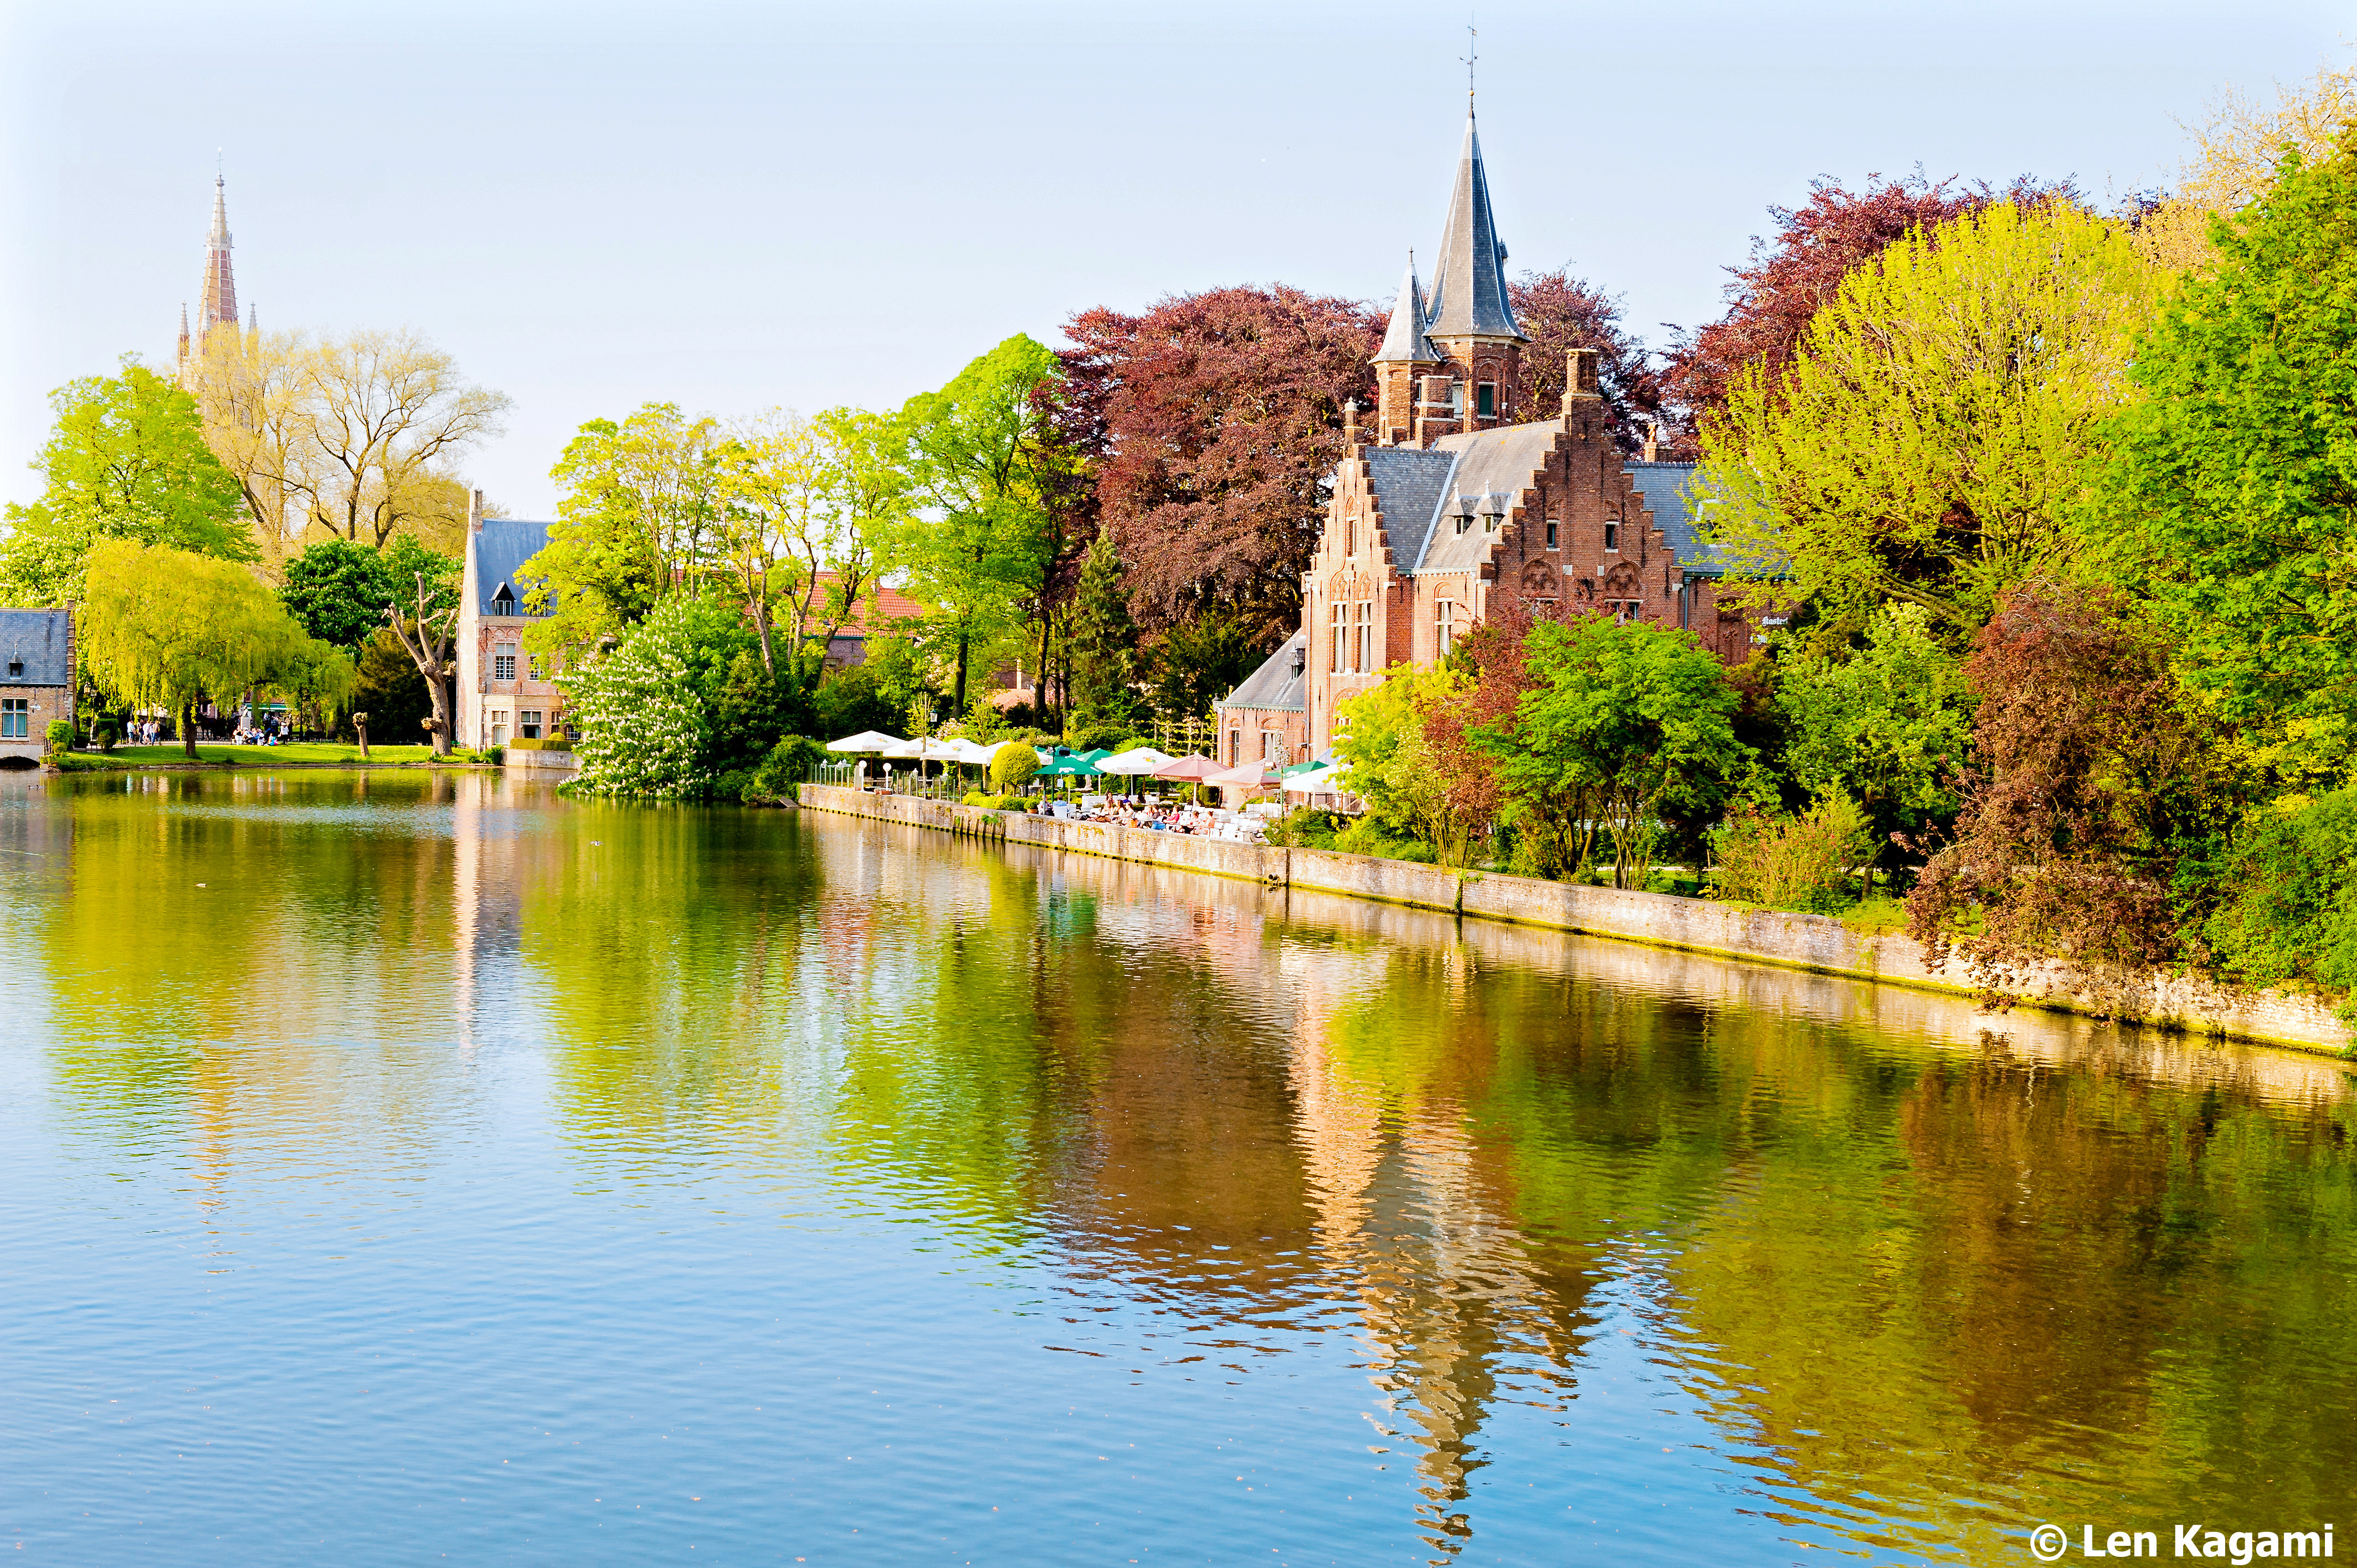 Minnewater in Bruges